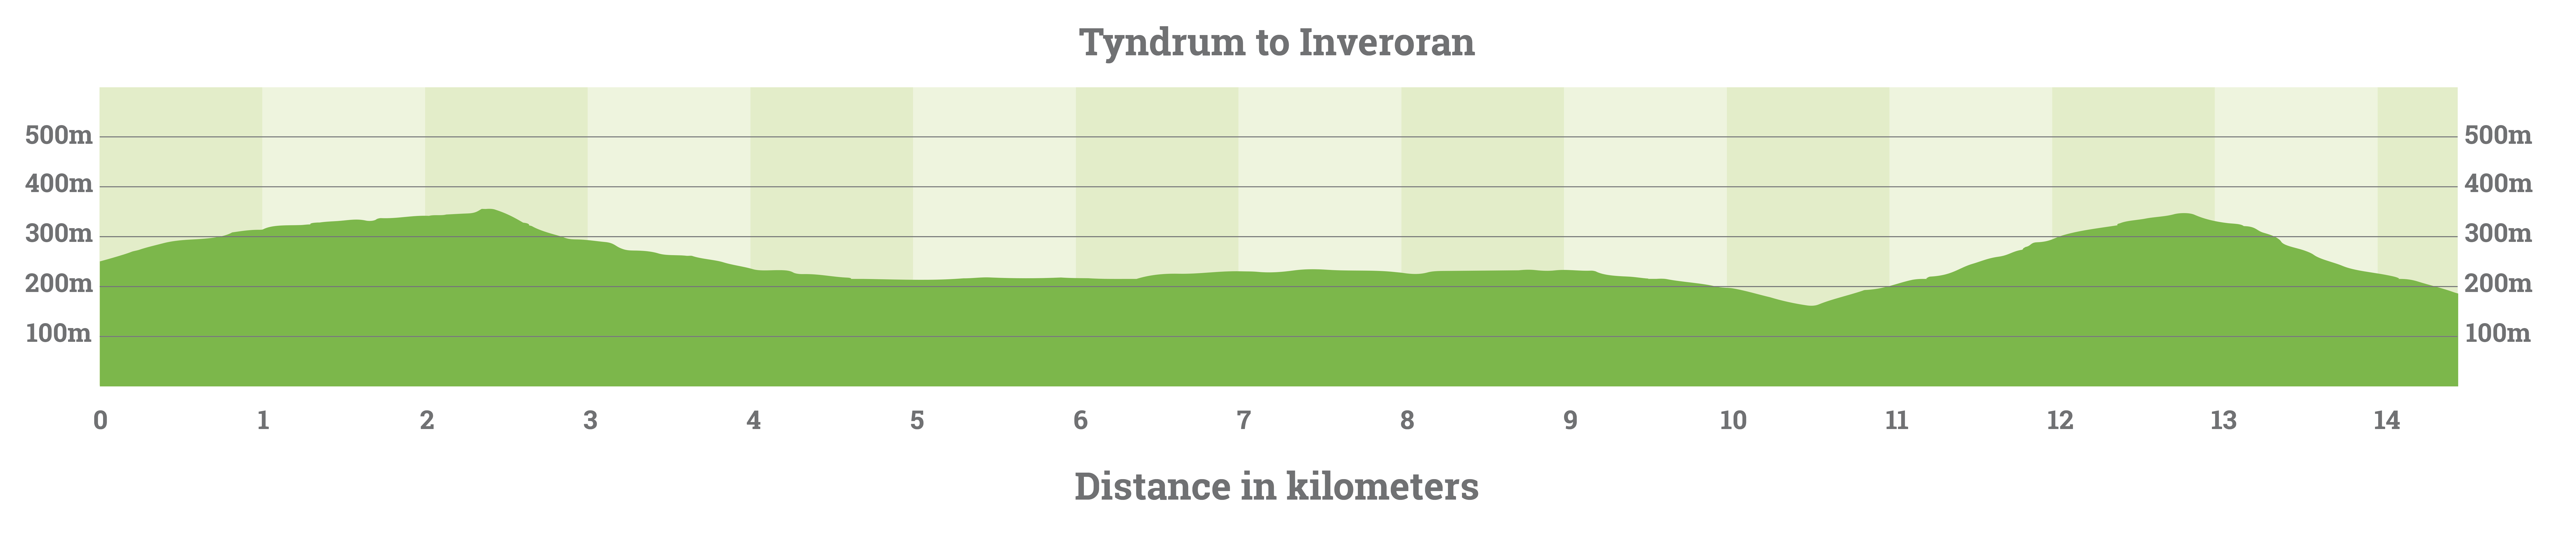 tynrdum-to-inveroran-elevation